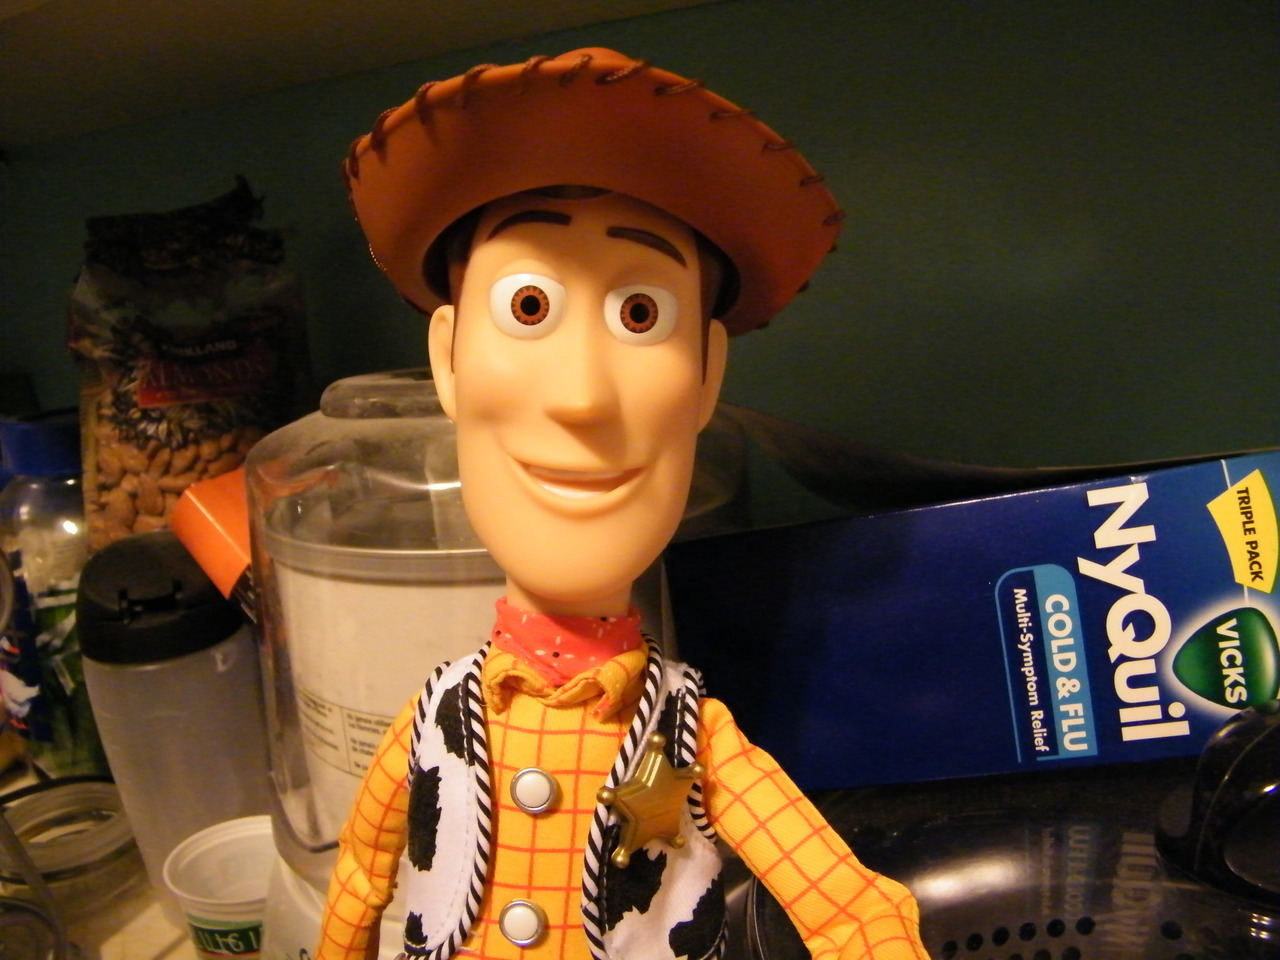 Check out Sheriff Woody Pride - Toy Story from 15 Best Pixar Characters